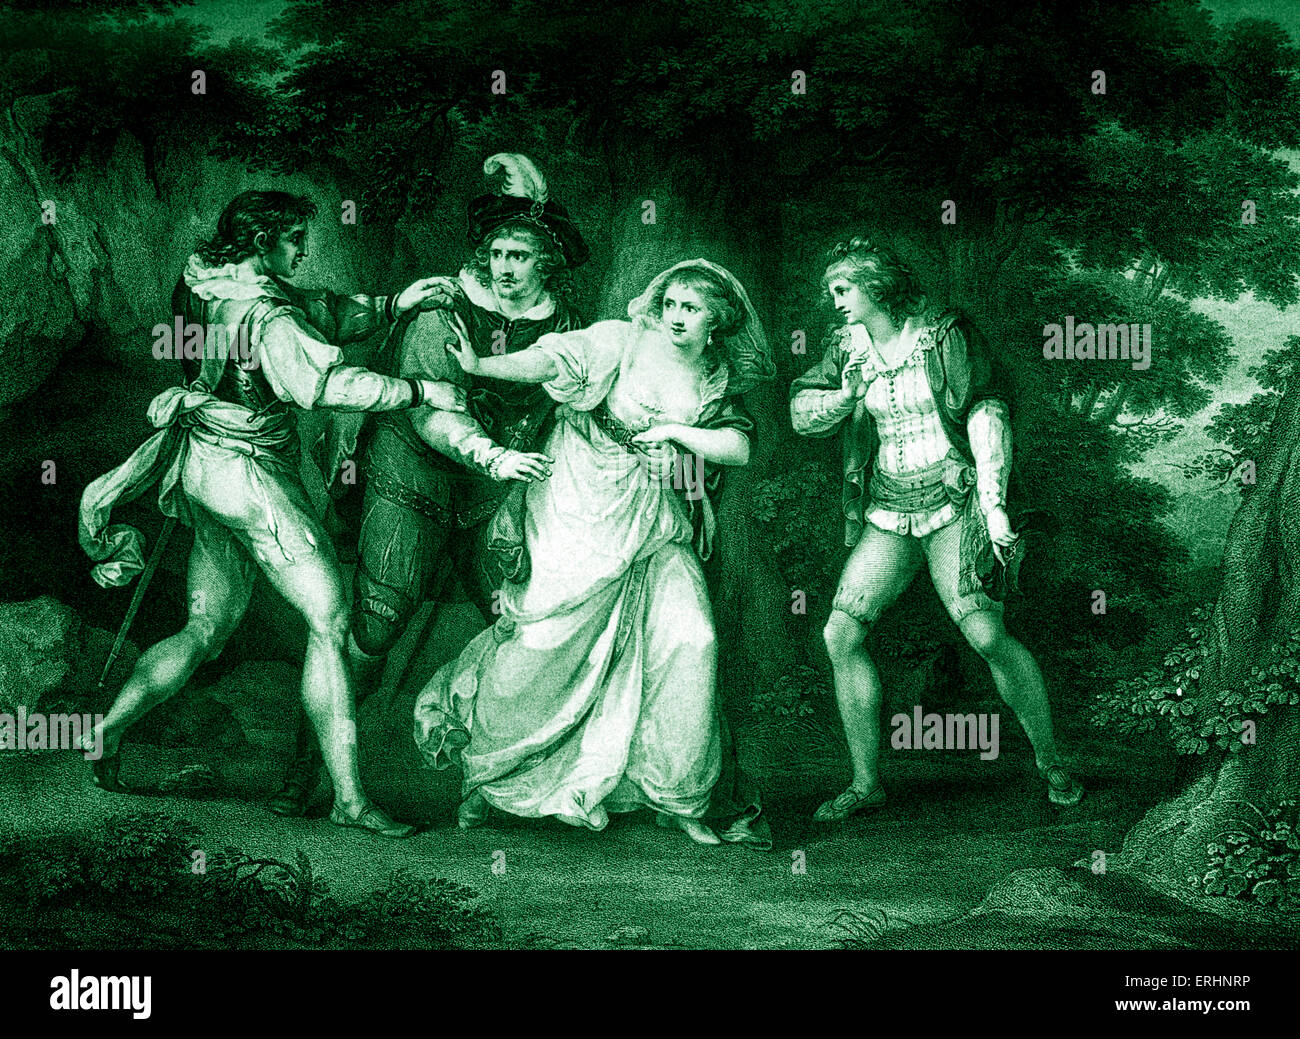 William Shakespeare 's play The Two Gentlemen of Verona  - Act V Scene IV. Valentine , Proteus , Silvia and - Stock Image